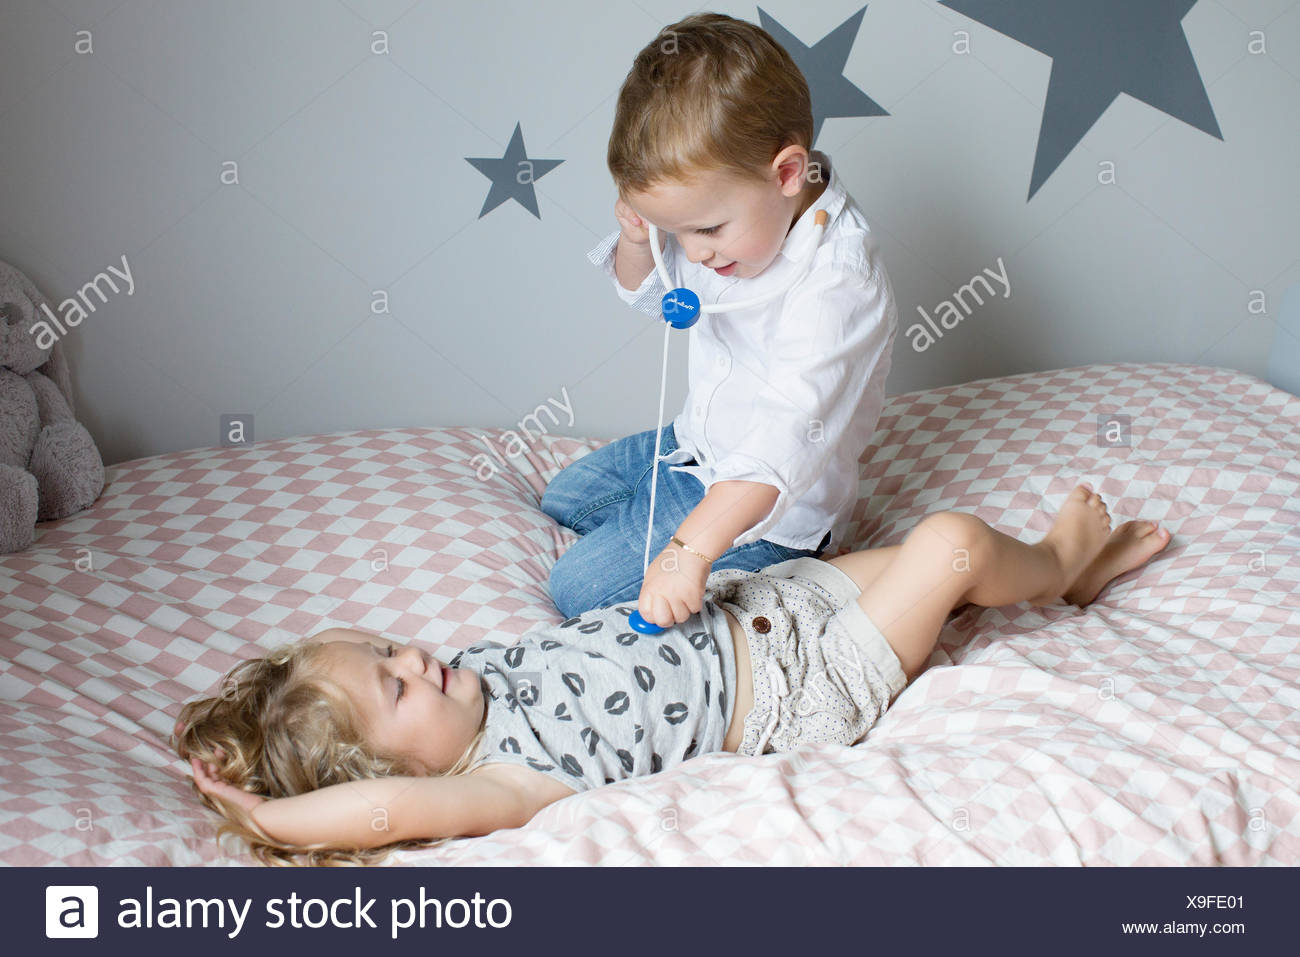 Children playing doctor with toy stethoscope - Stock Image